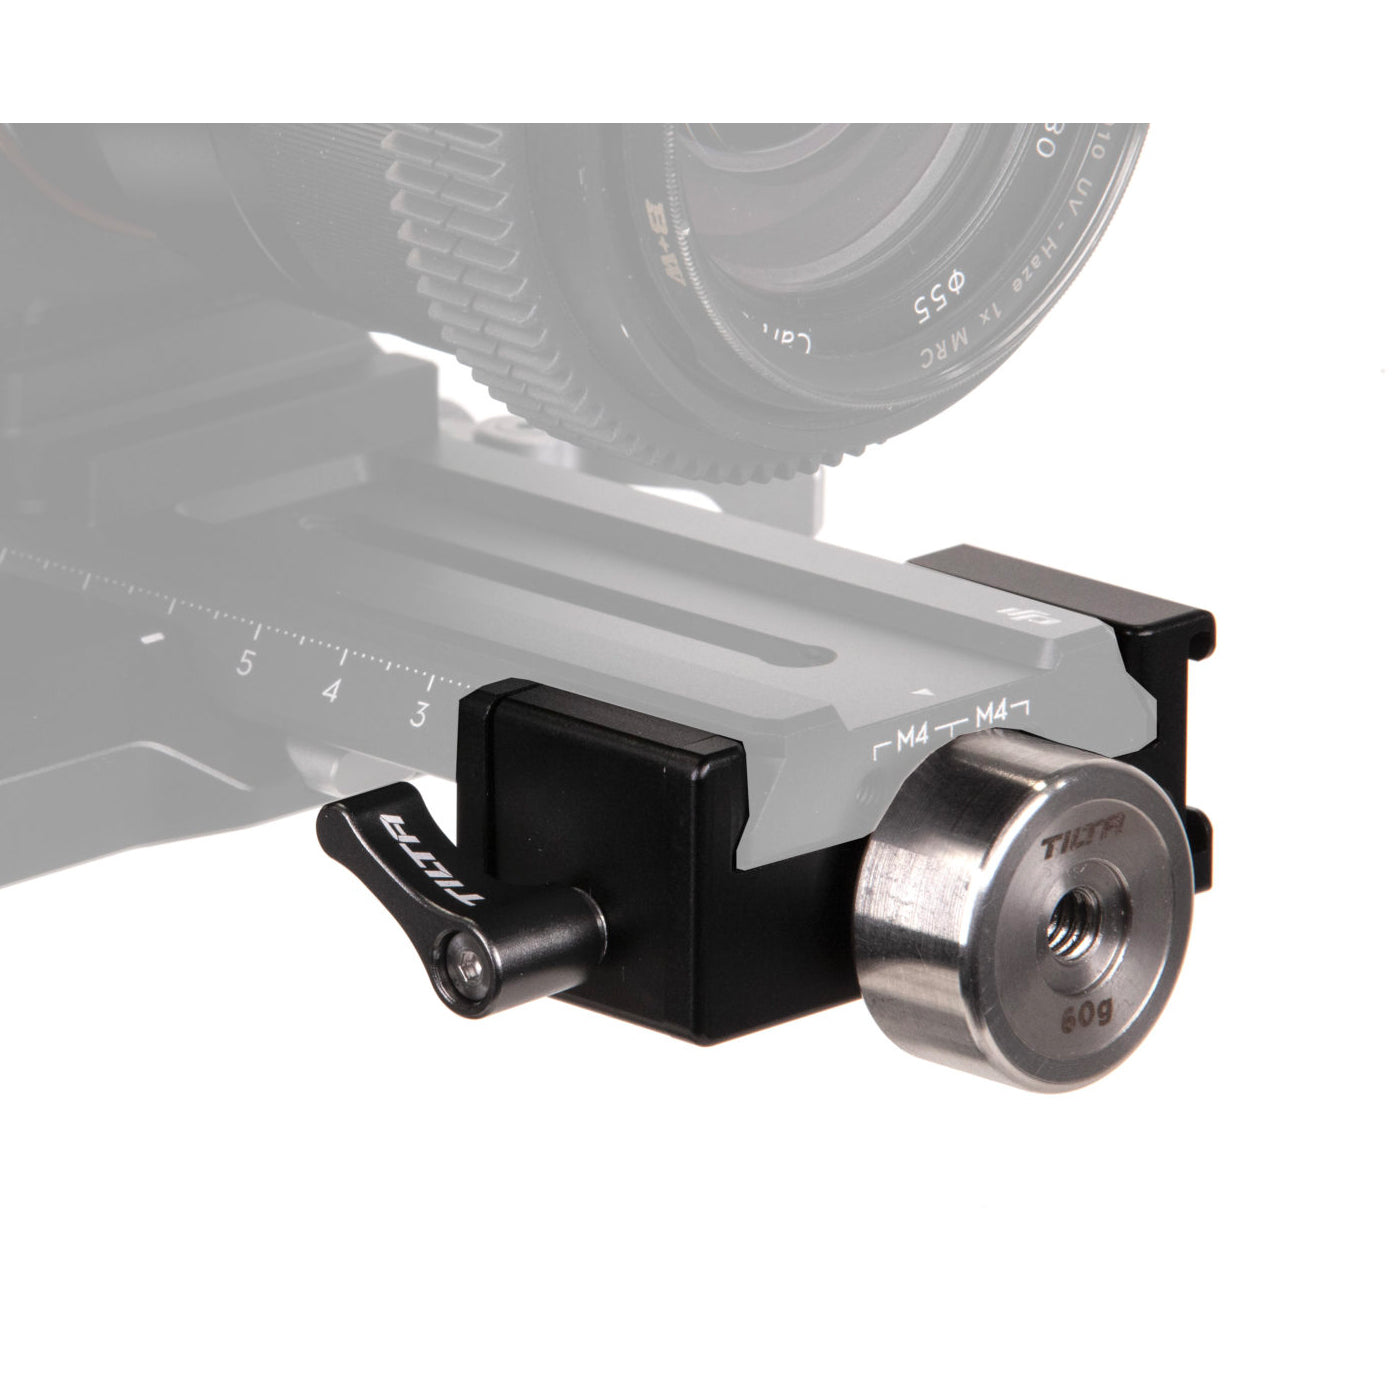 TILTA|Quick Release Baseplate Counterweight Adapter(for DJI RS2) - Viledge Online Store